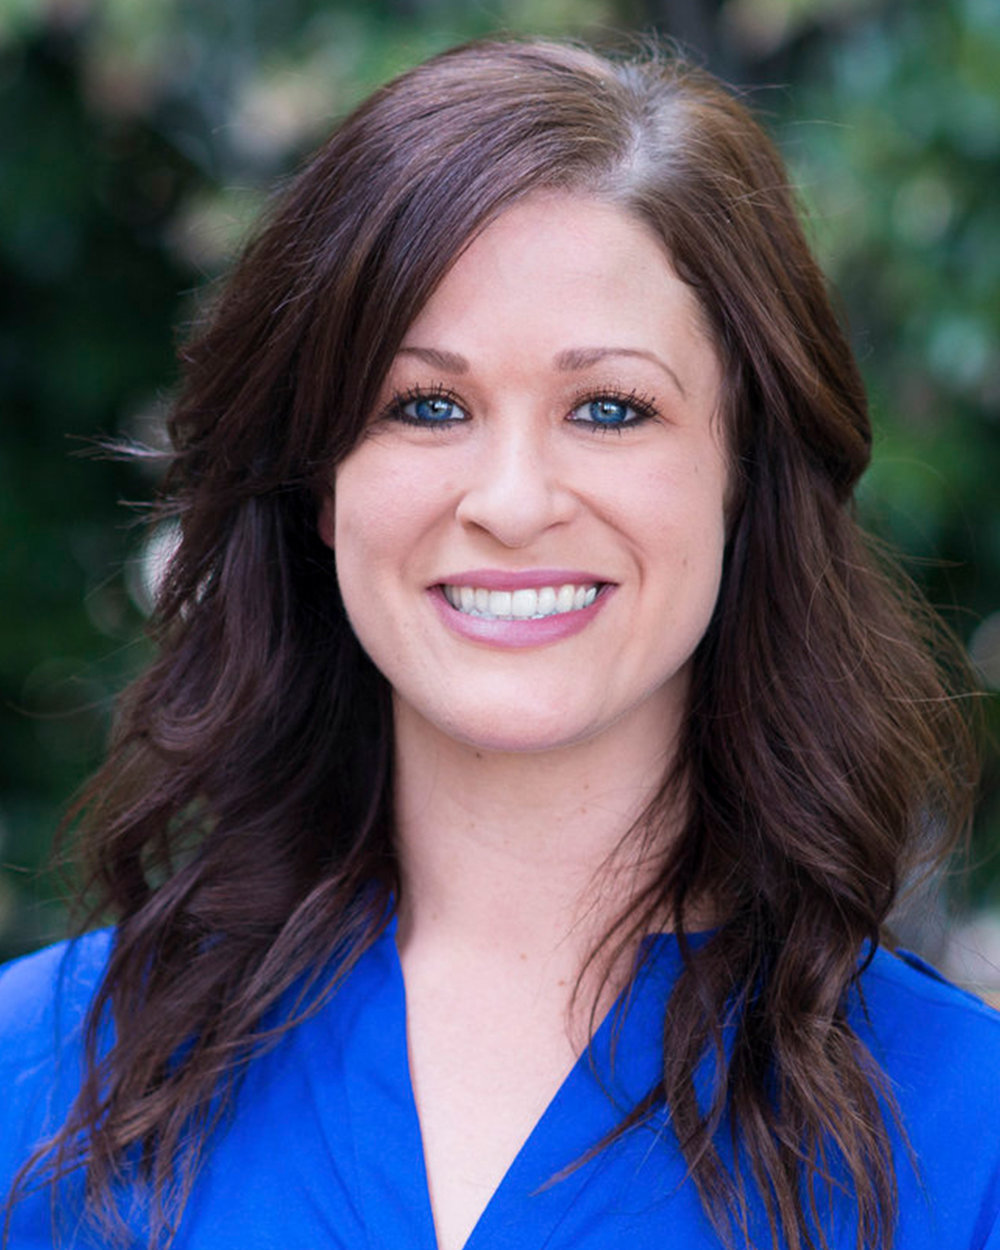 Laurie Todd, M.S., LPC-Intern,Under the Supervision of Kendhal Herrera, LPC-S - Licensed Professional Counselor-InternGottman Level I TrainedDBT TrainedInsurance: N/ALocation: Uptown Dallas and Plano, TexasPrivate Pay Rate: $75